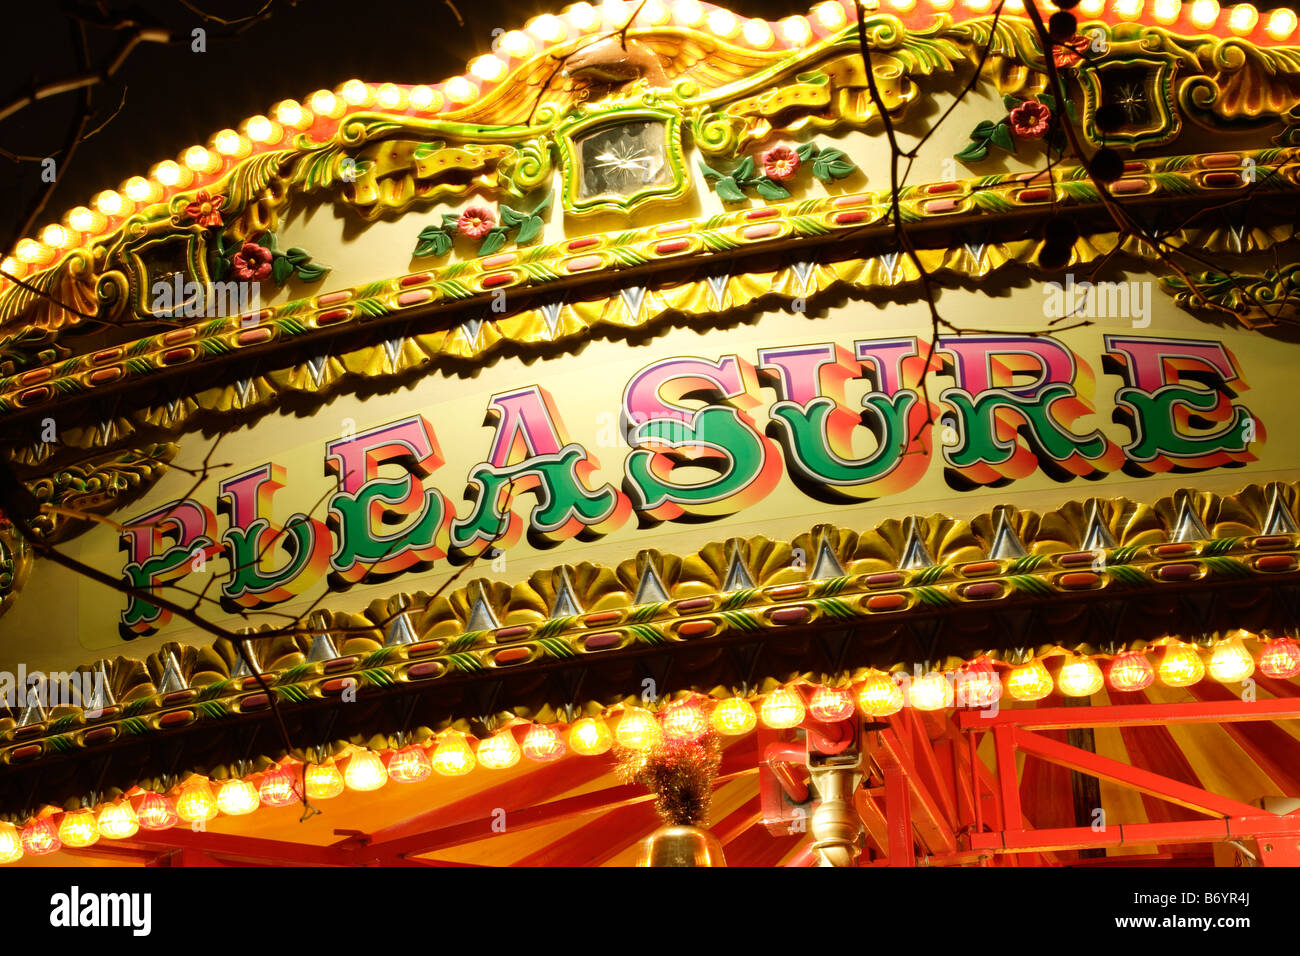 Le mot plaisir sur un merry go round Photo Stock